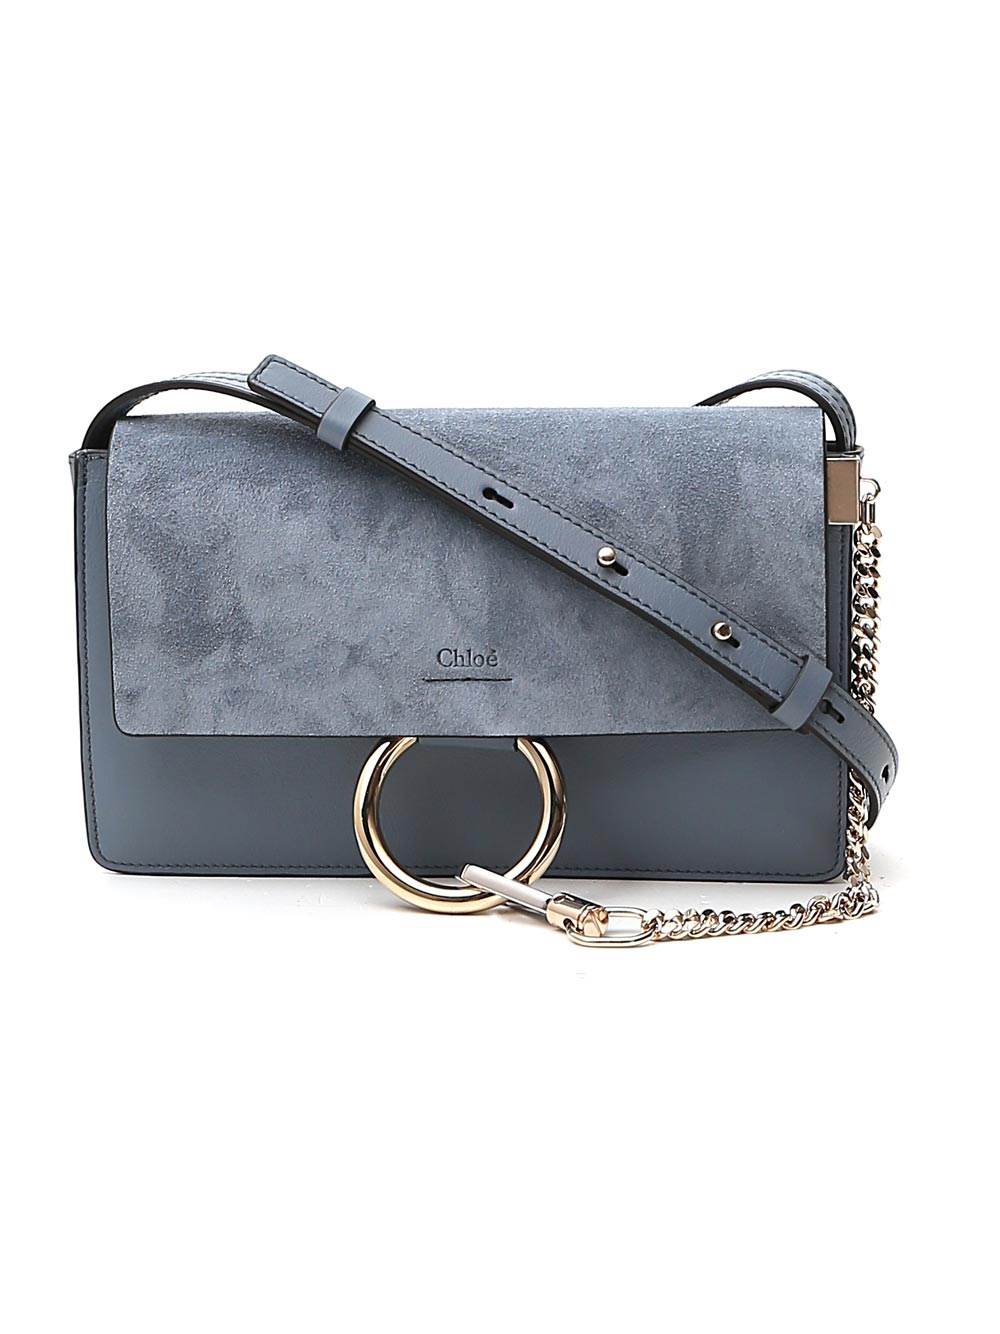 Chloé CHLOÉ FAYE SMALL SHOULDER BAG